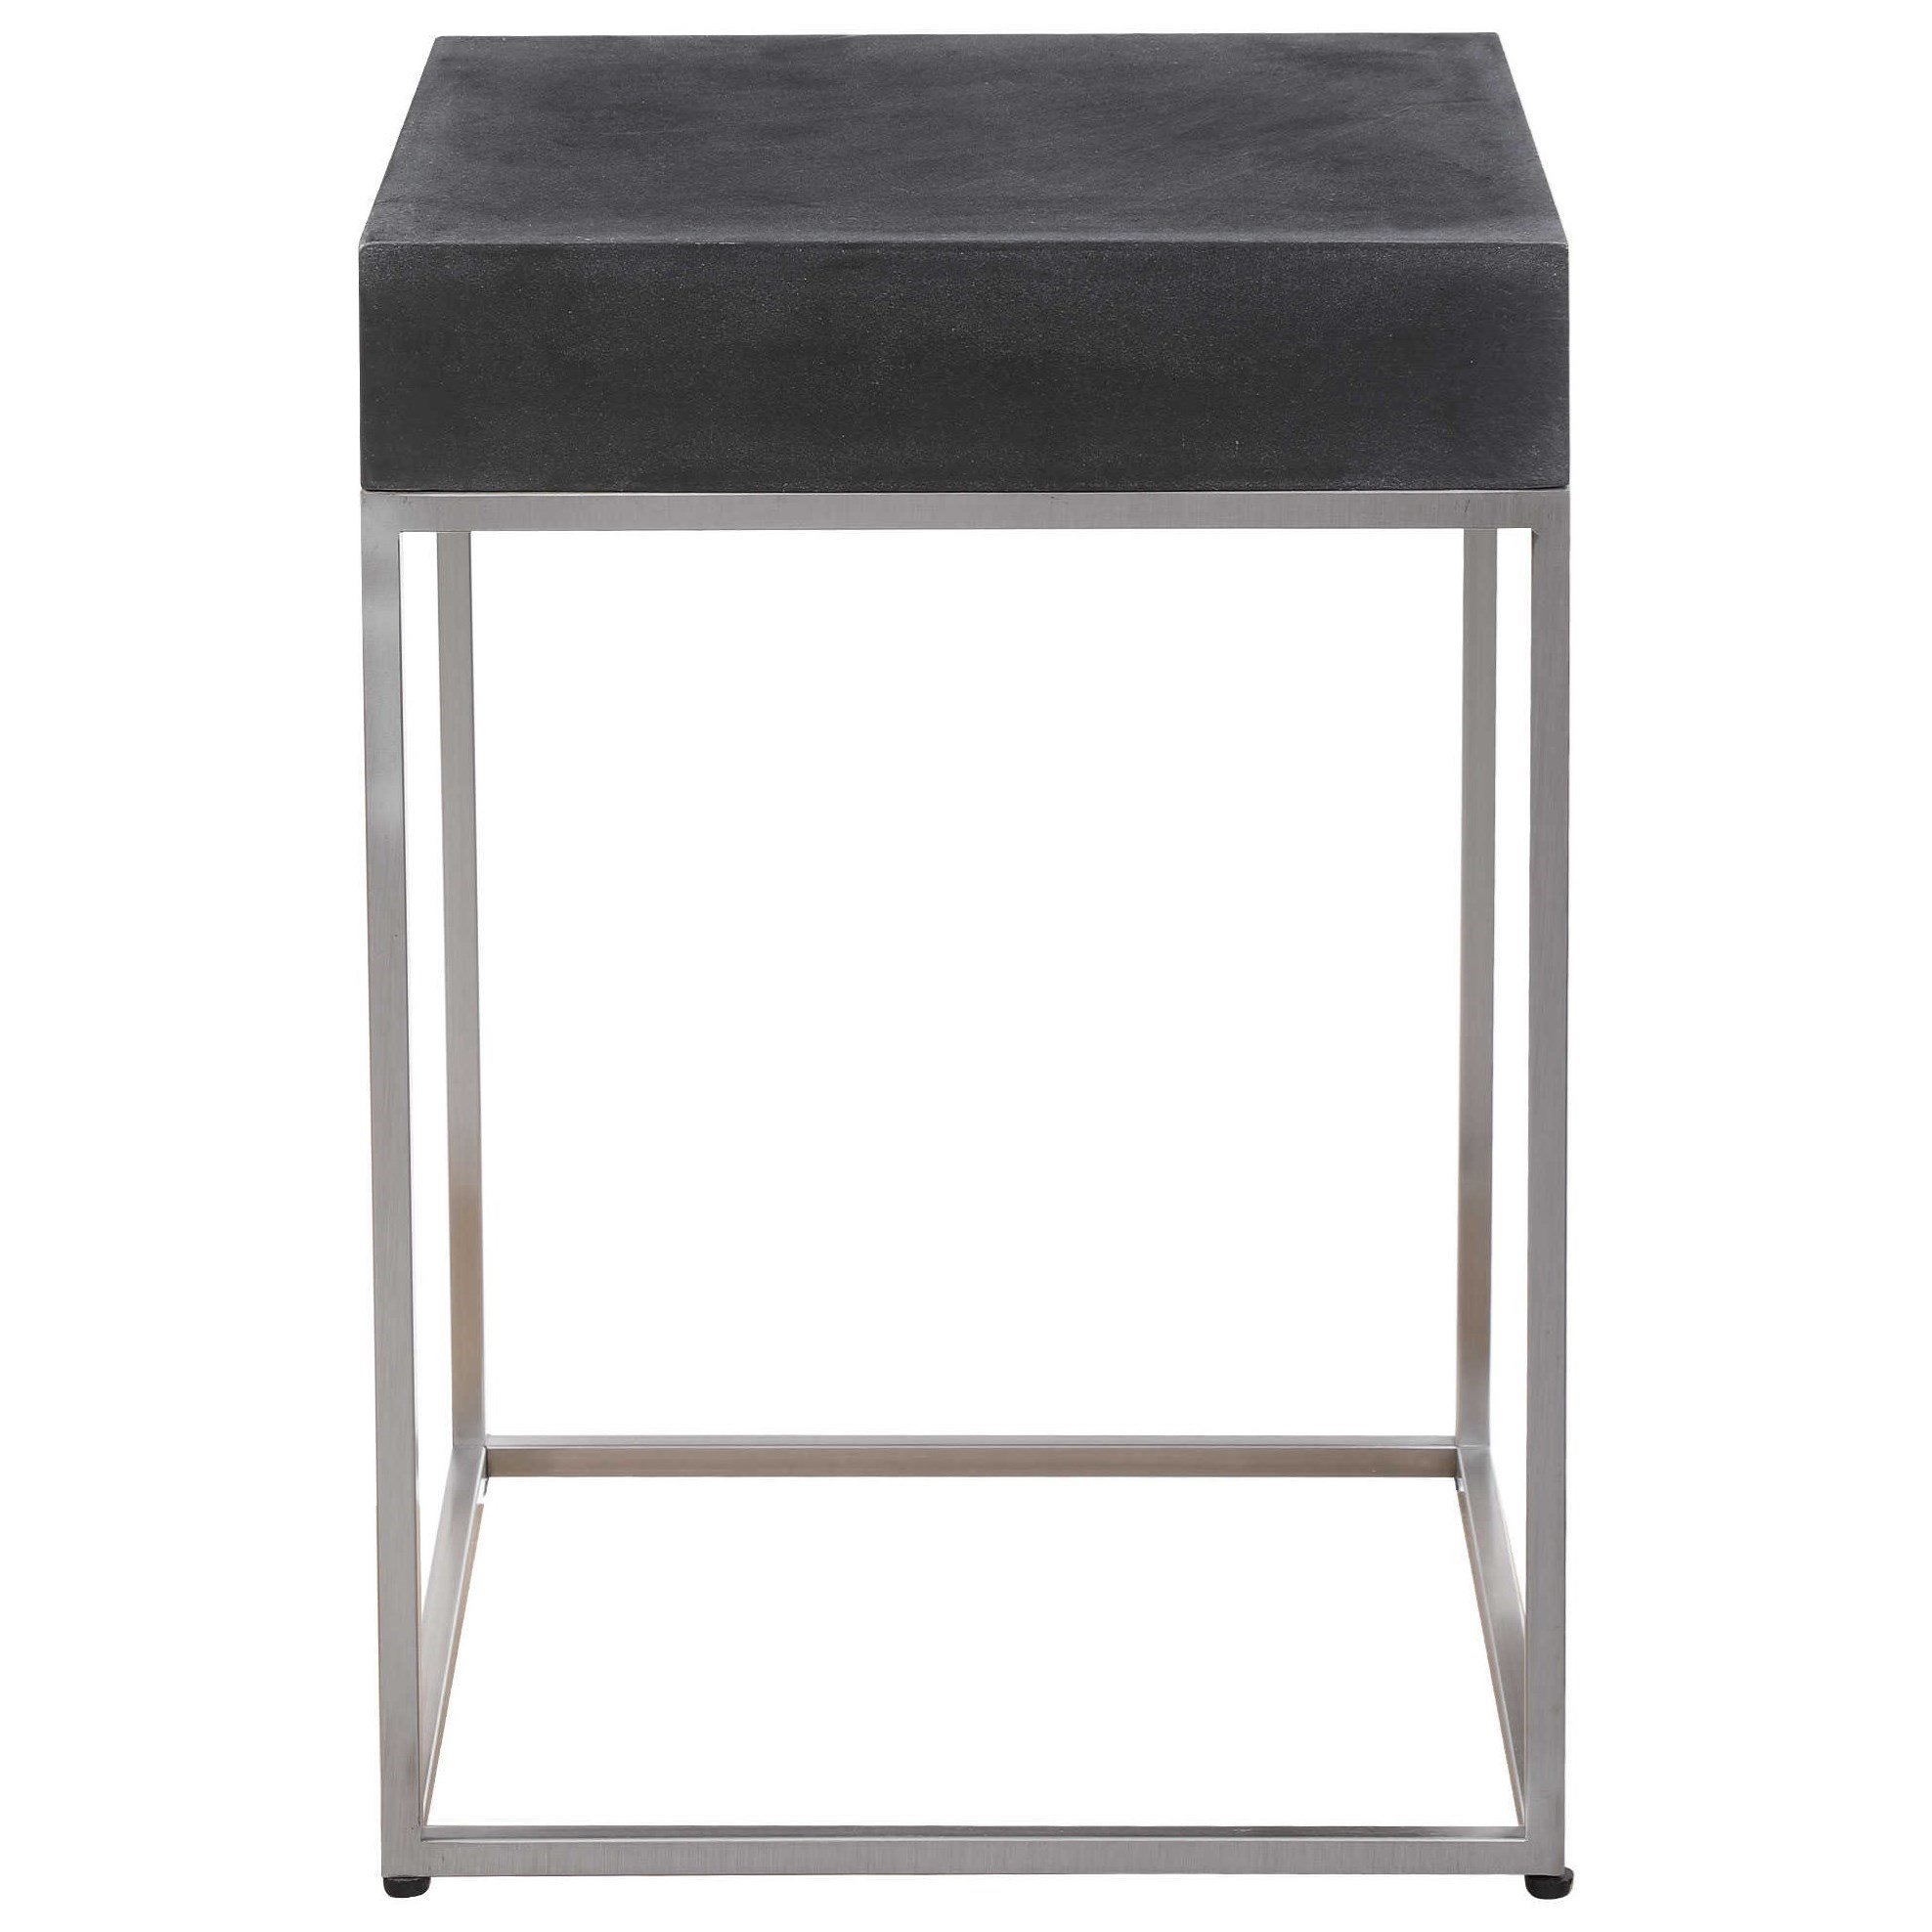 Accent Furniture - Occasional Tables Black Concrete Accent Table by Uttermost at Suburban Furniture